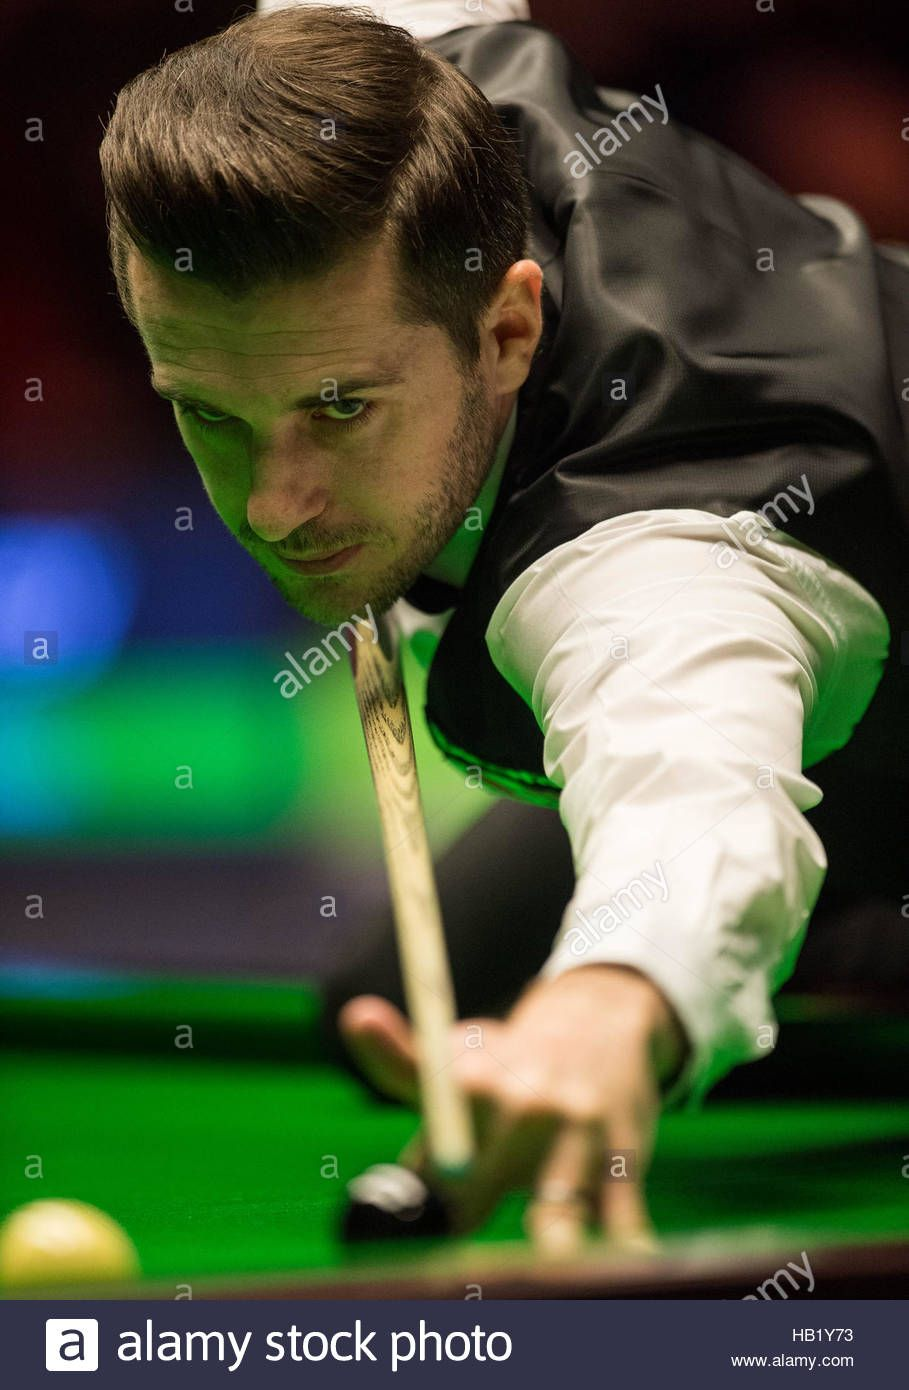 Download This Stock Image York Uk 3rd Dec 2016 Mark Selby Of England Competes During The Semi Final Match With Shaun Murphy O Mark Selby Snooker Competing